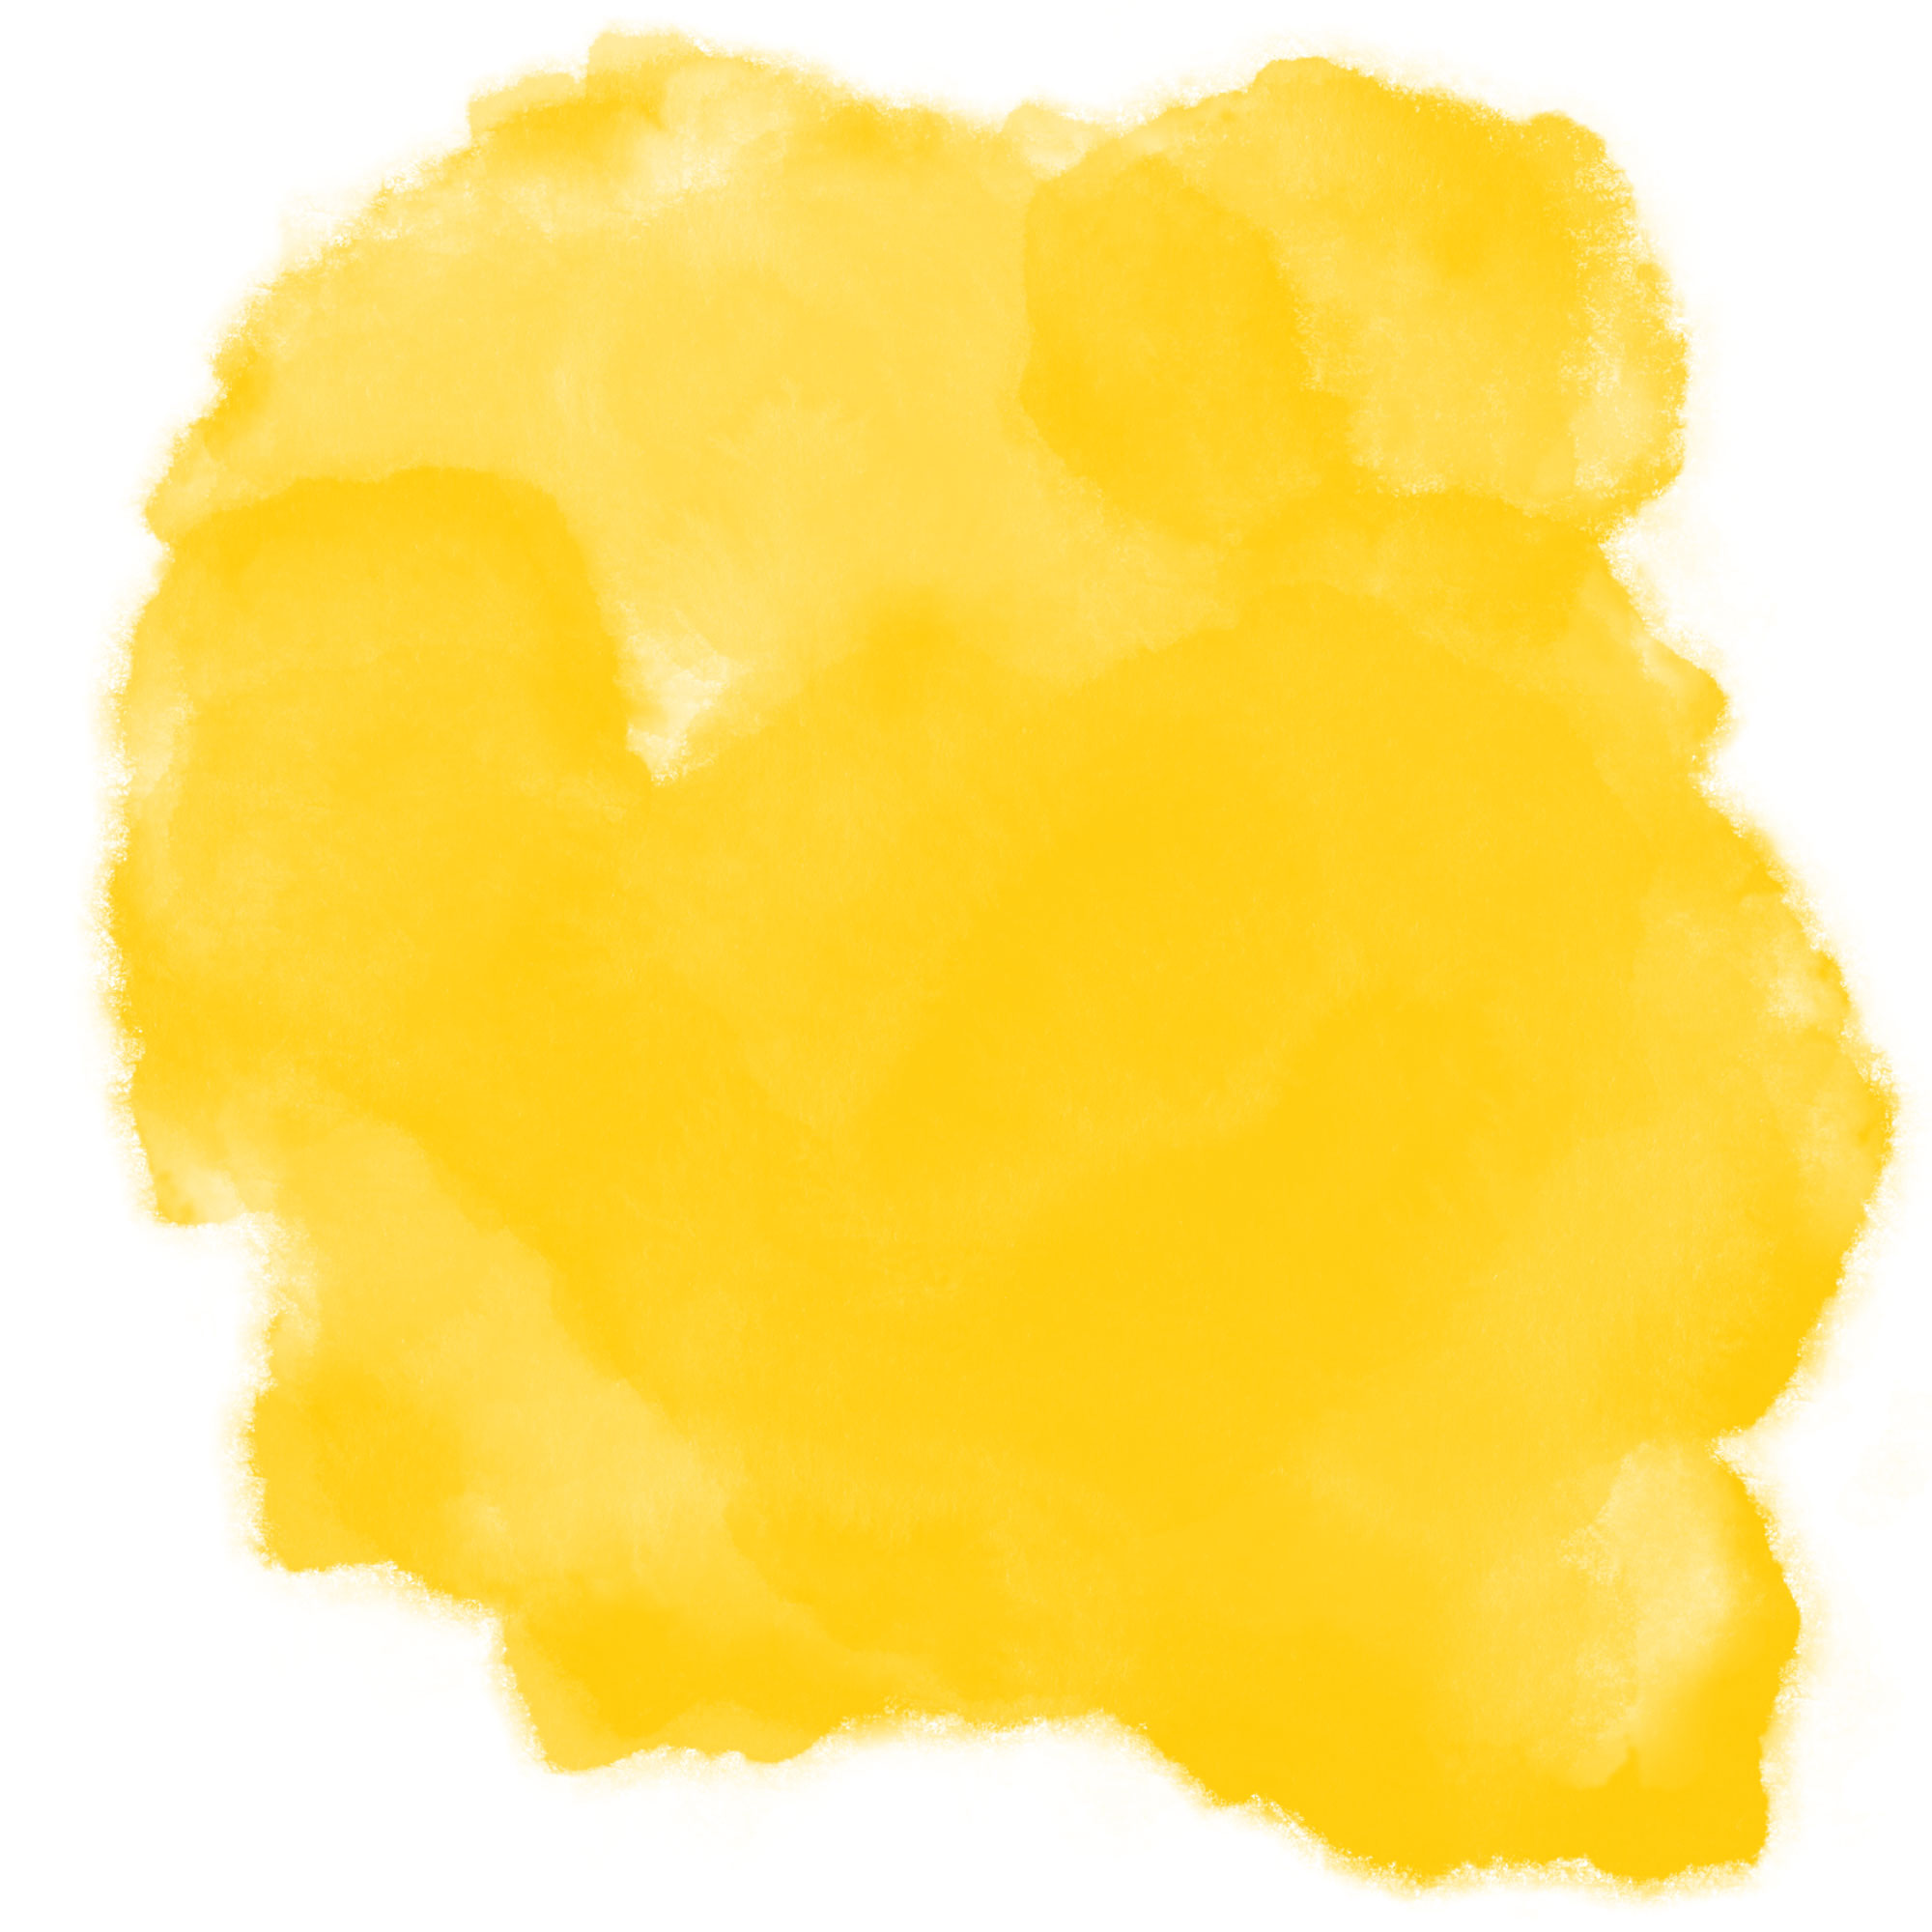 yellow watercolor